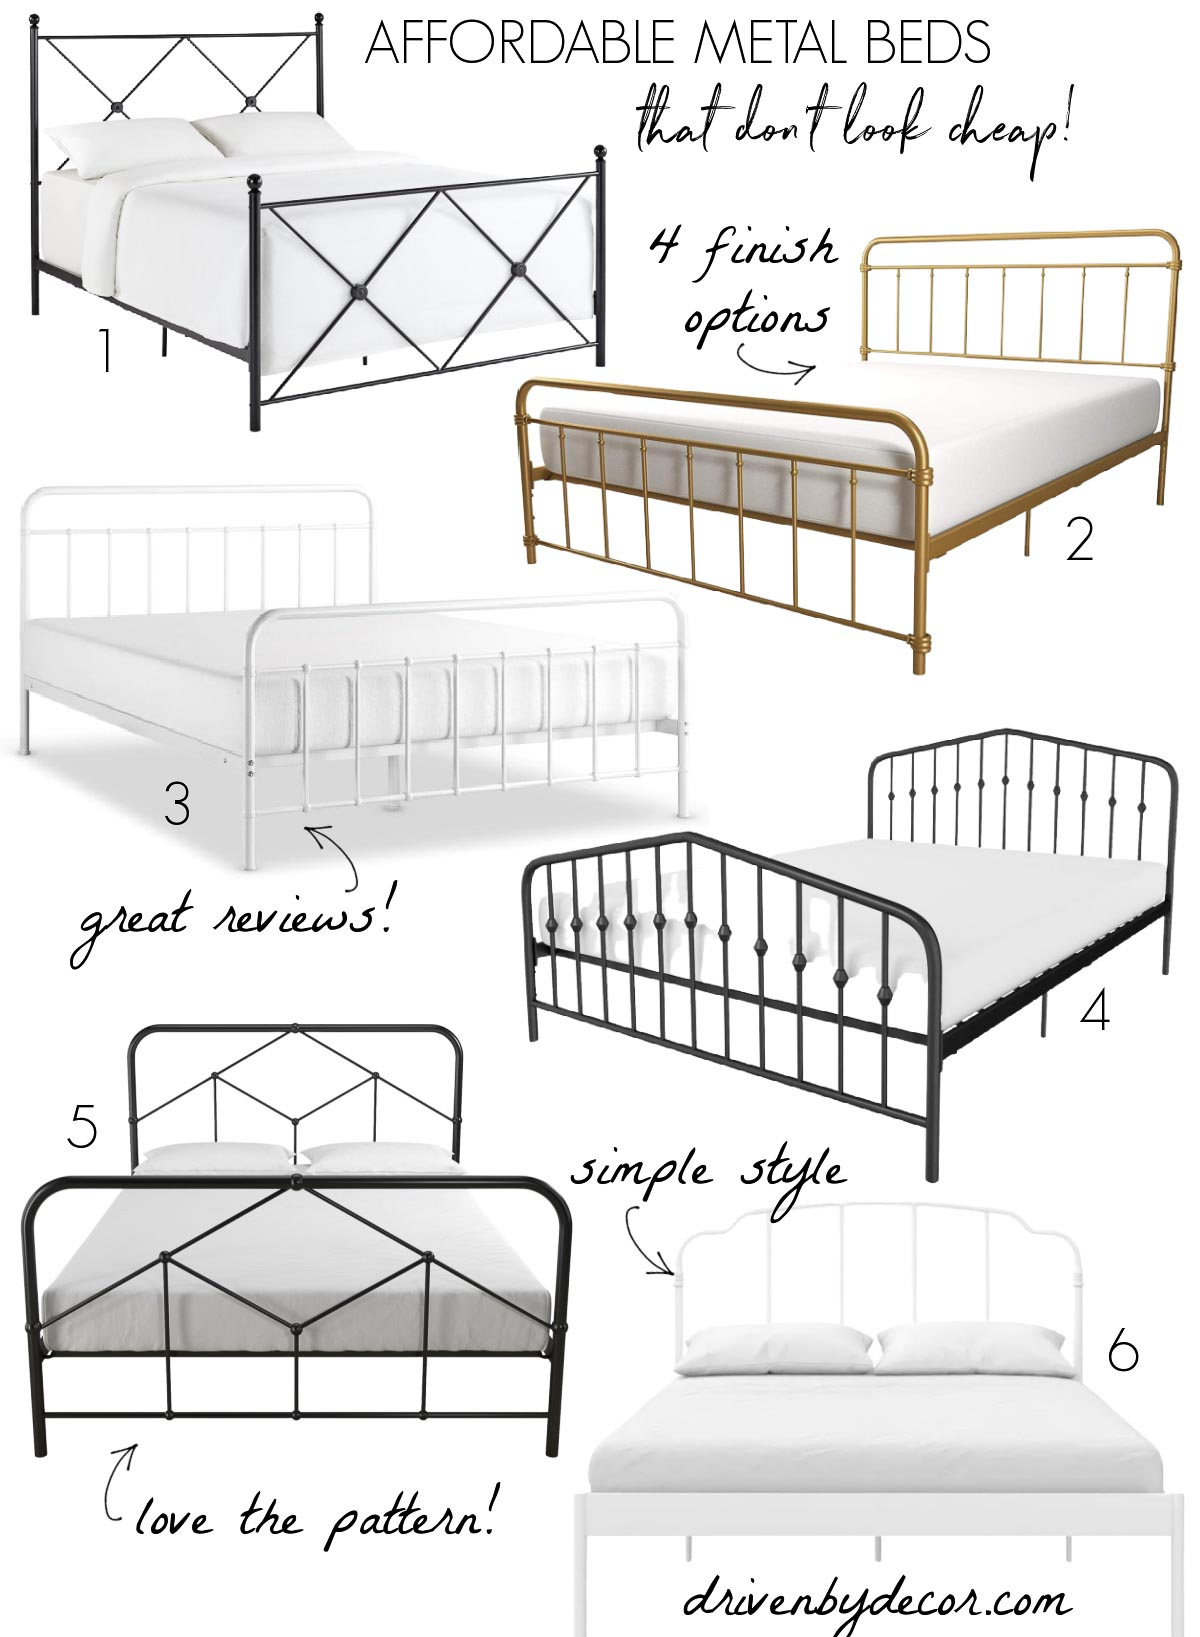 Affordable beds that don't look cheap!